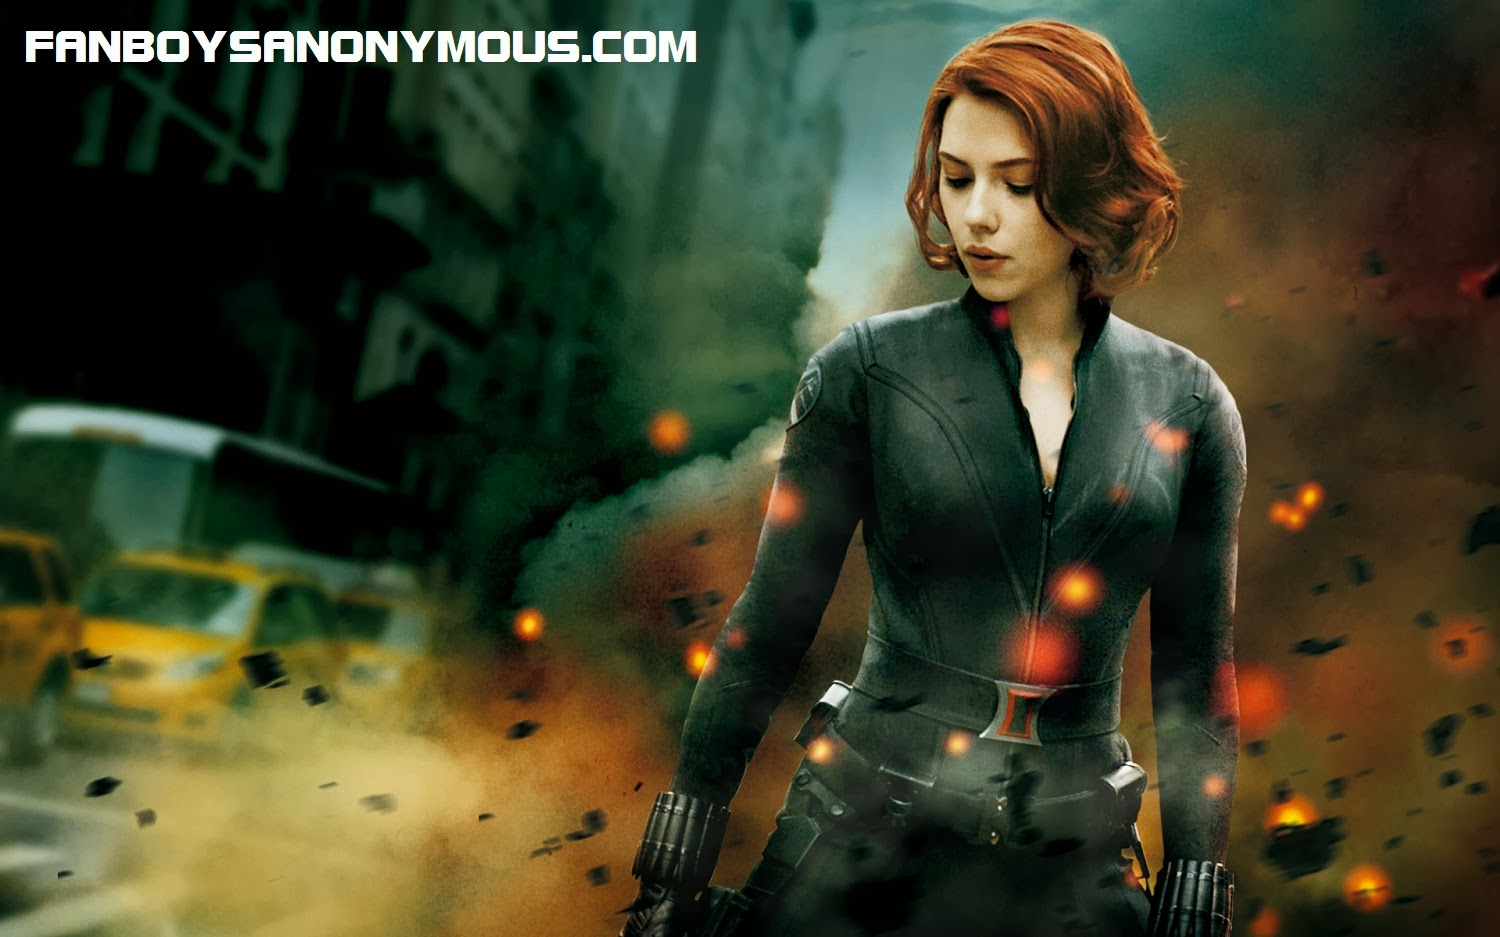 Avengers Black Widow spy endorses anti-Palestine drinks SodaStream